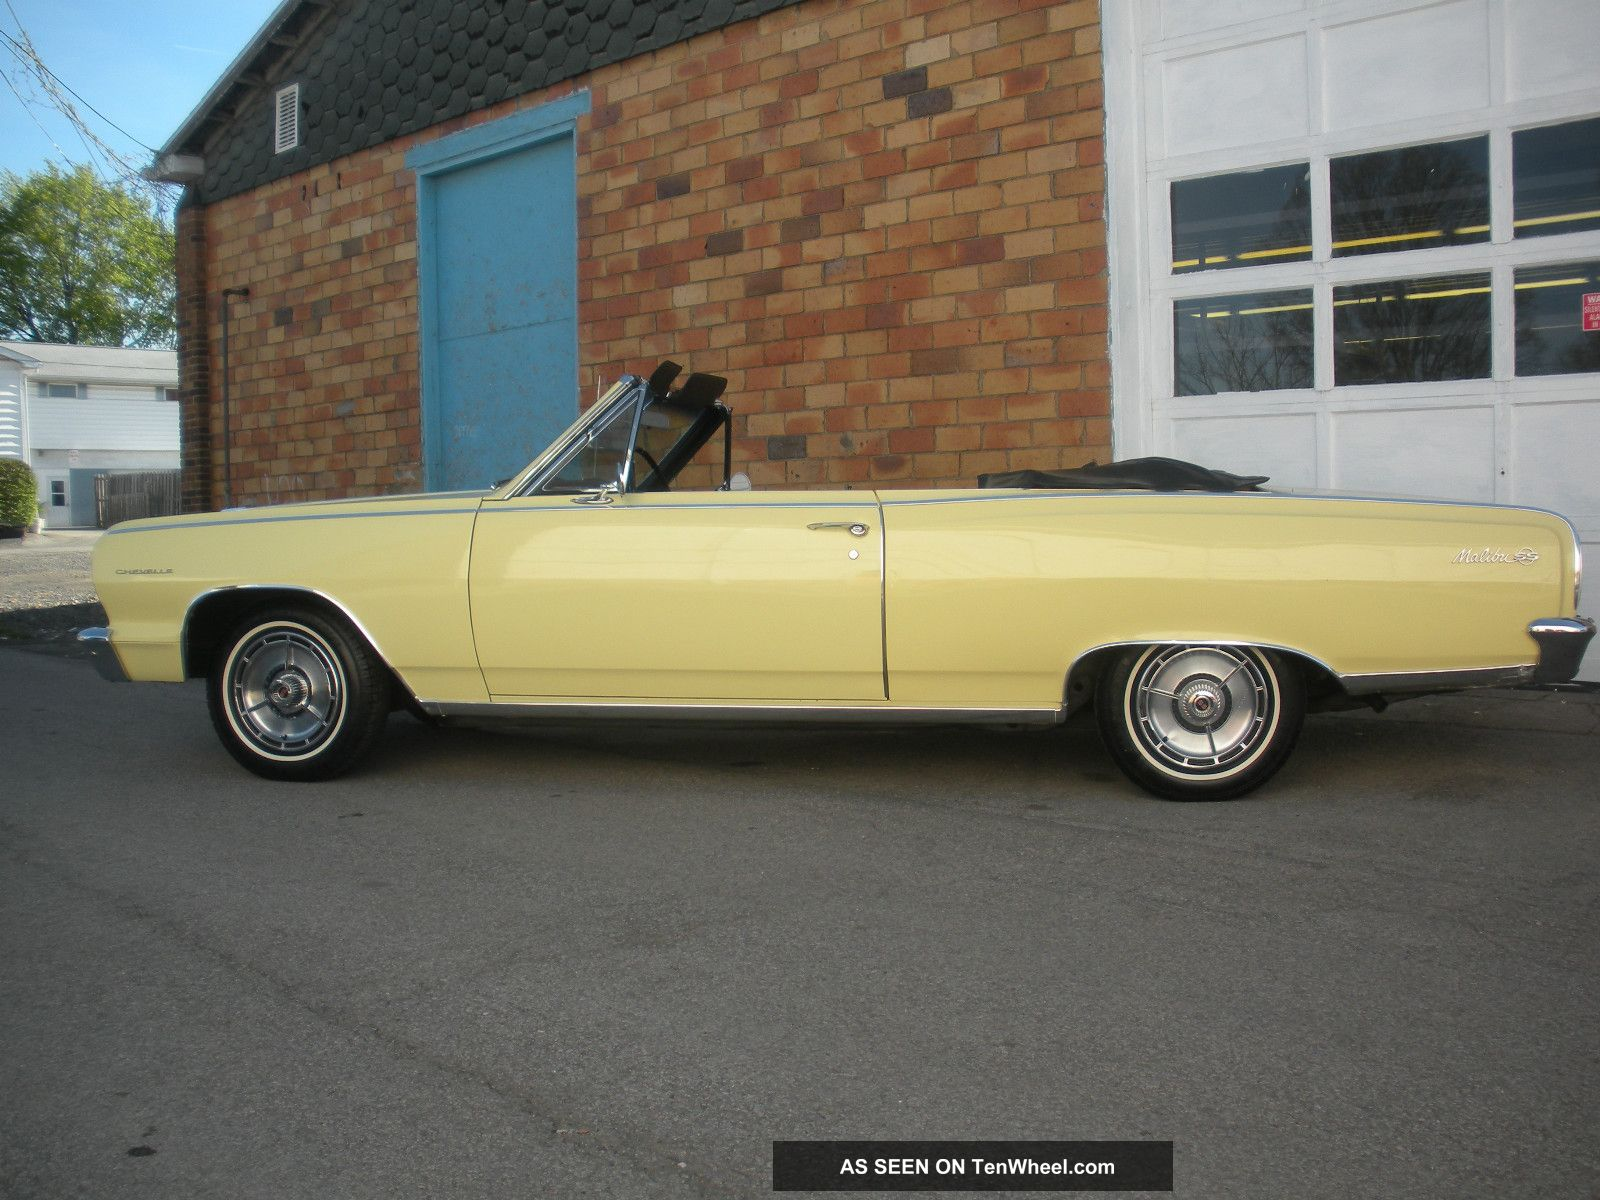 1964 Chevelle Malibu Ss Convertible Survivor, Unmolested